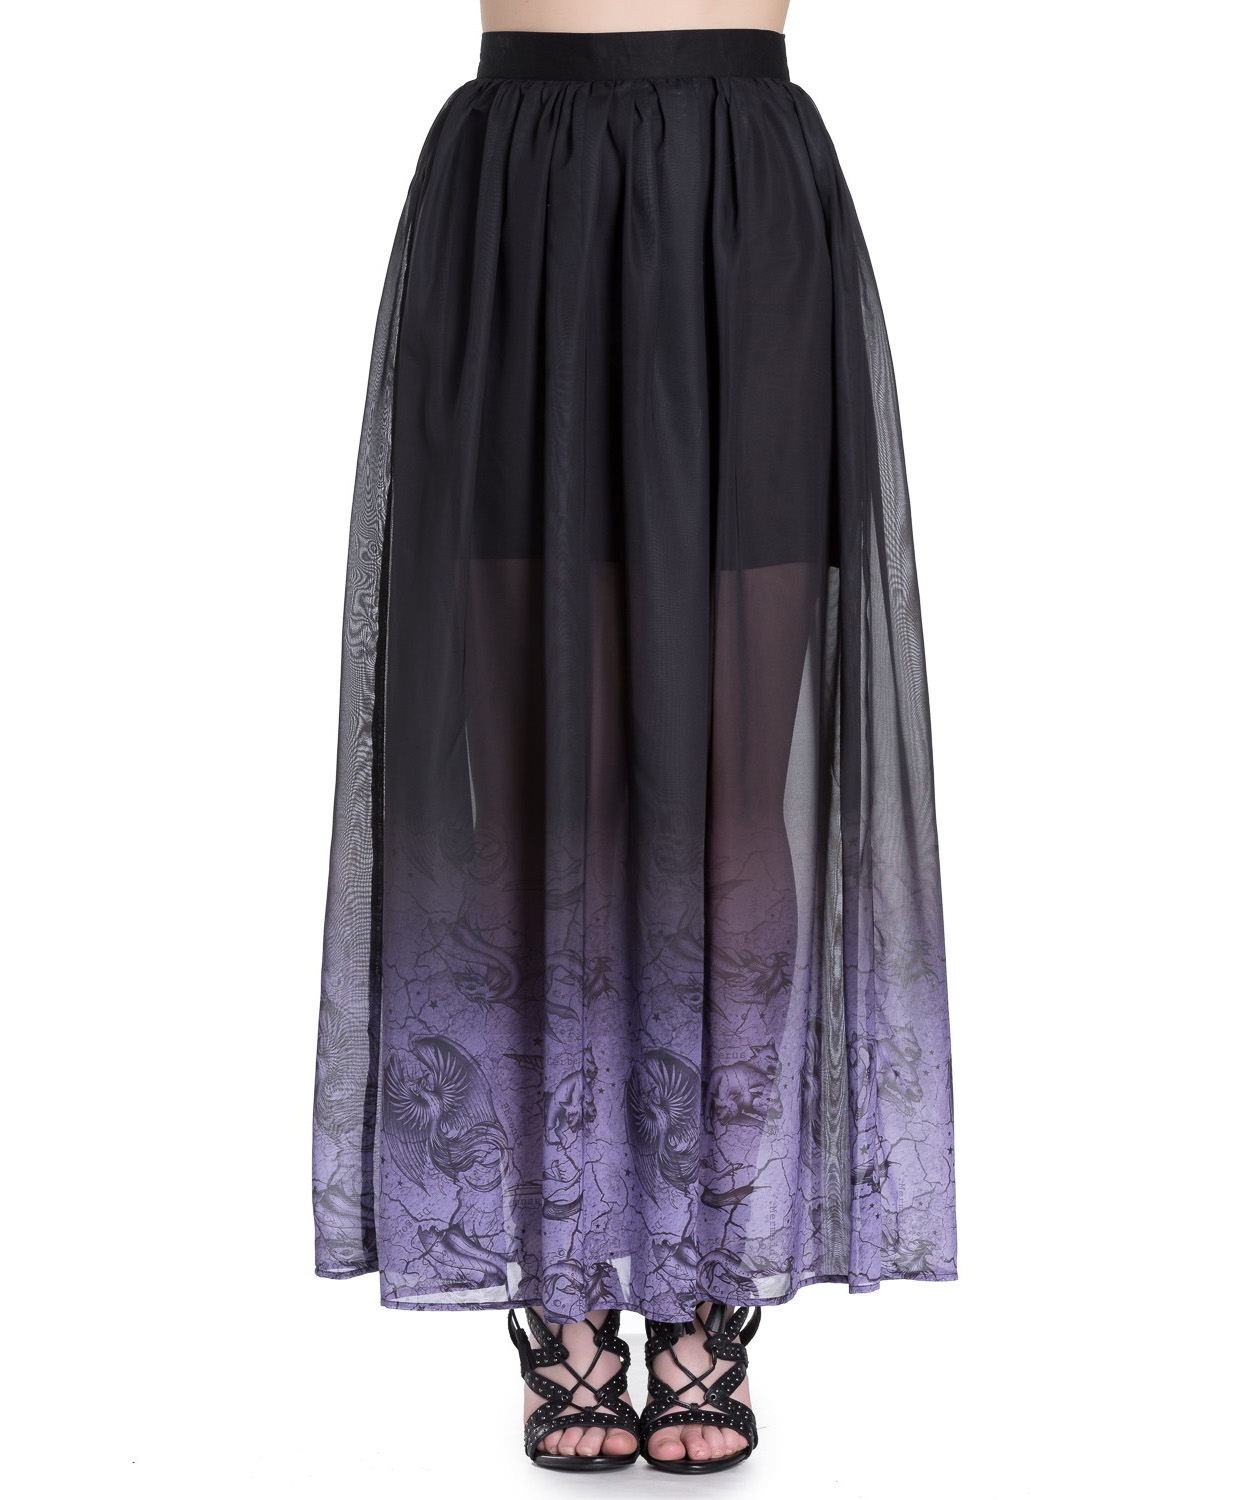 Hell-Bunny-Spin-Doctor-Goth-Purple-Mystical-EVADINE-Maxi-Skirt-All-Sizes thumbnail 7